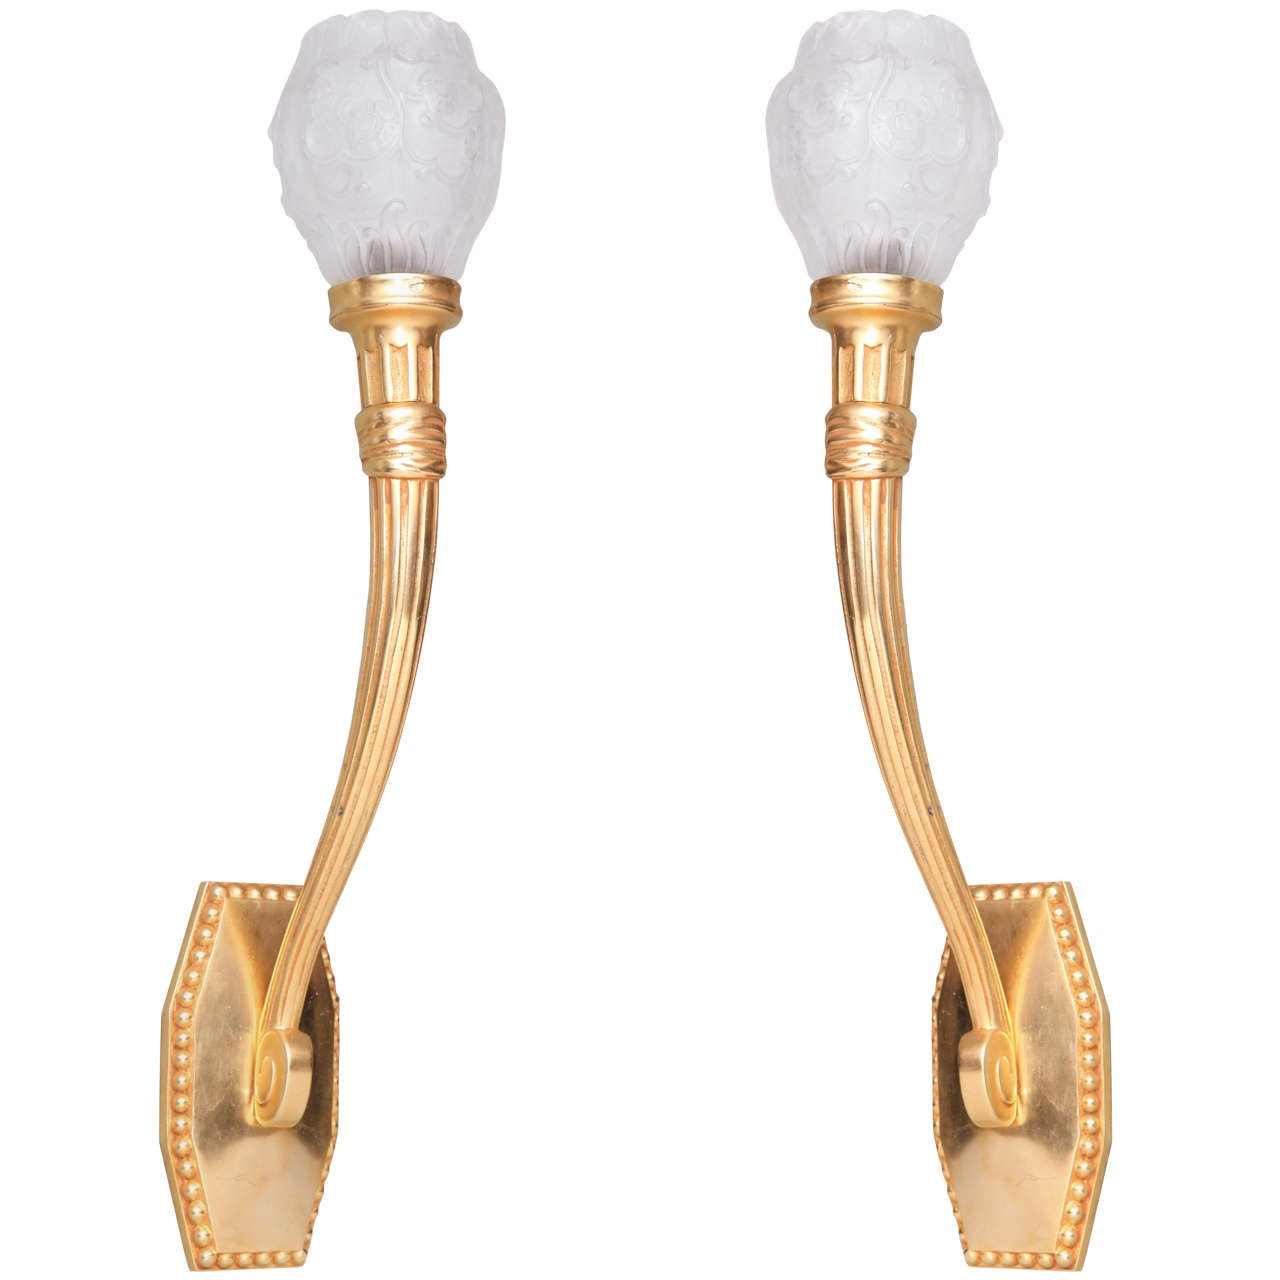 Pair Of French Art Deco Wall Sconces By Dufresne At 1stdibs